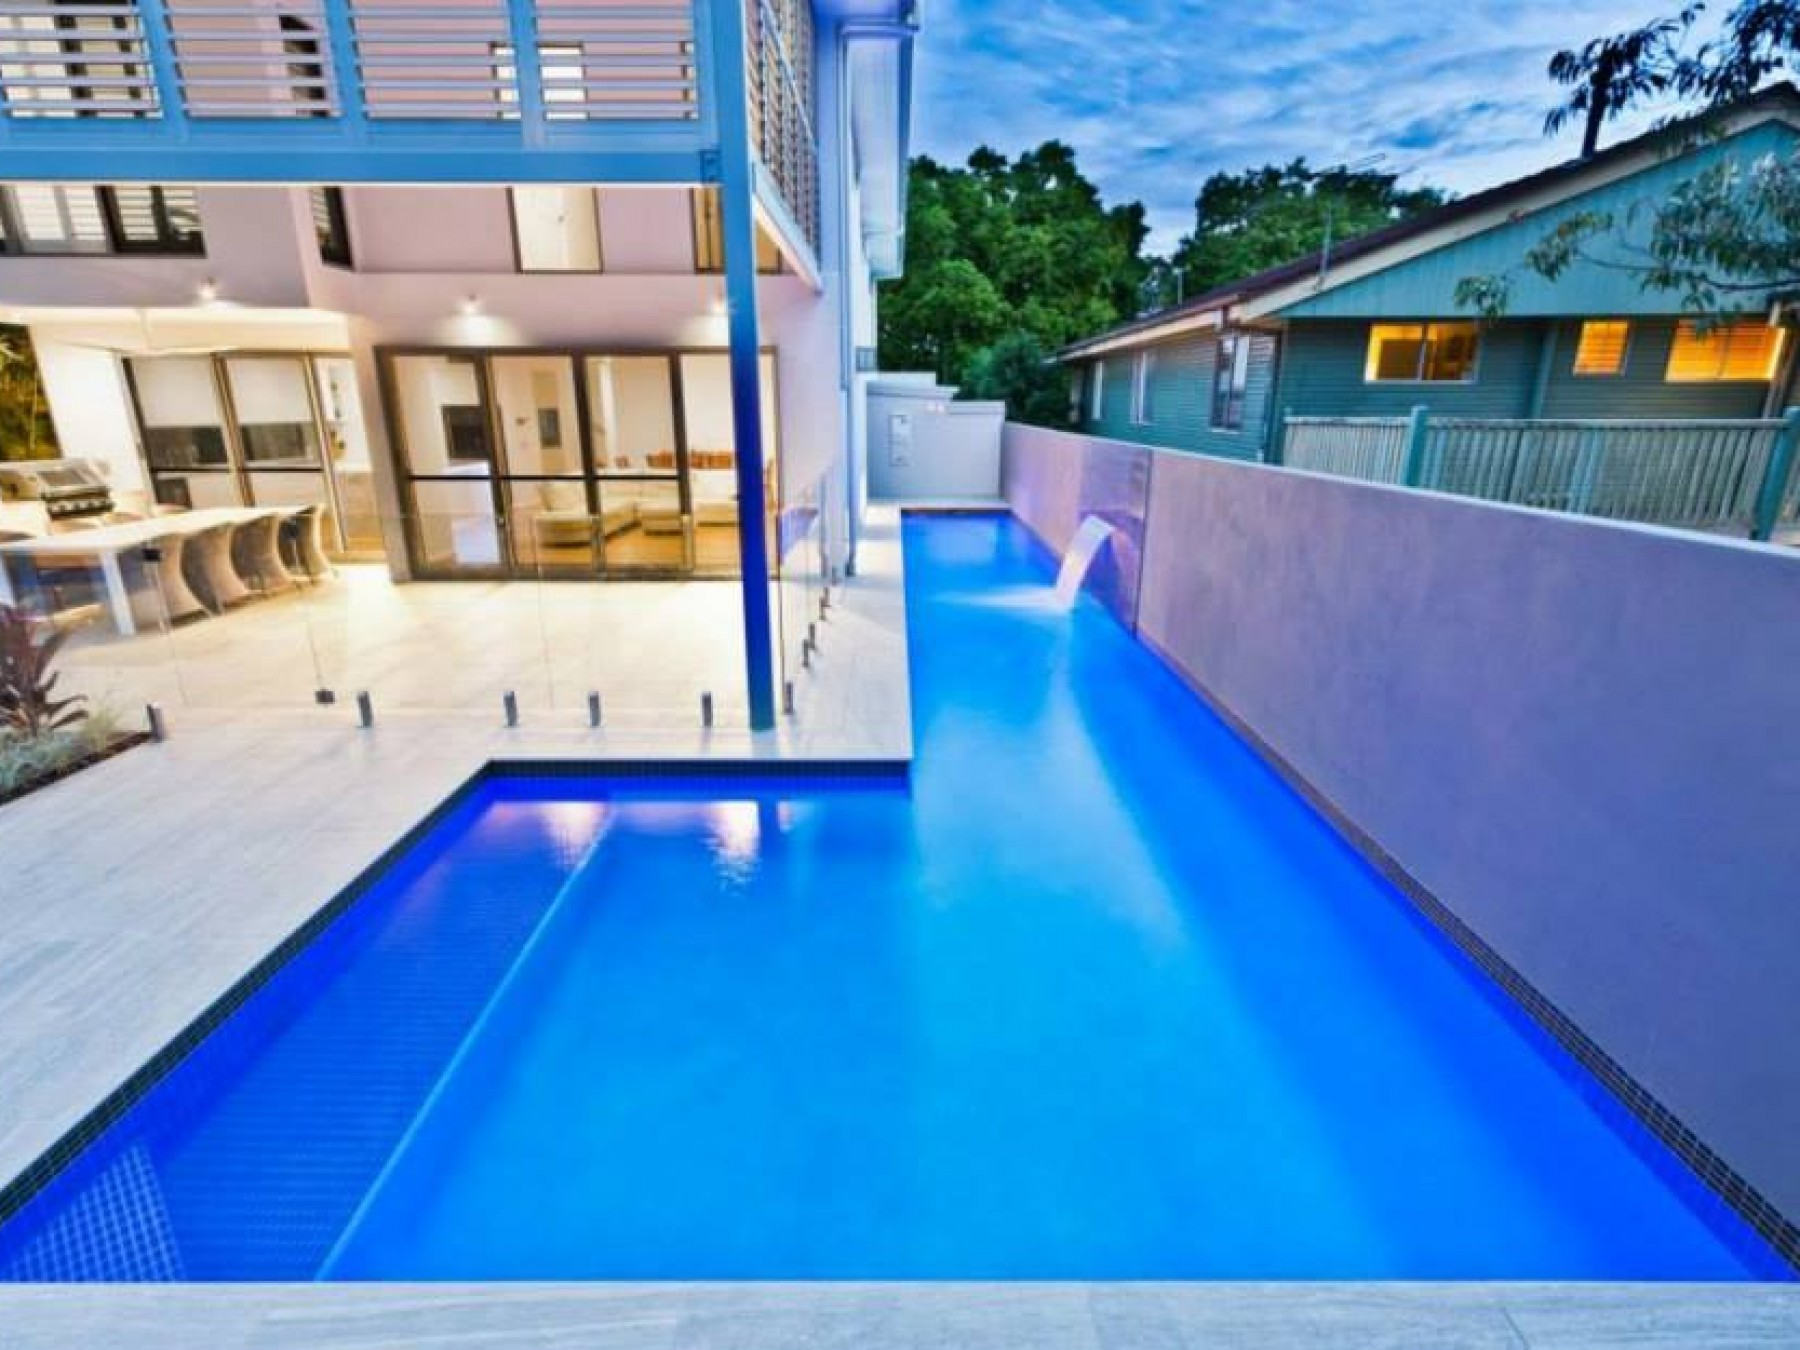 Selling or Leasing a pool in Inala East